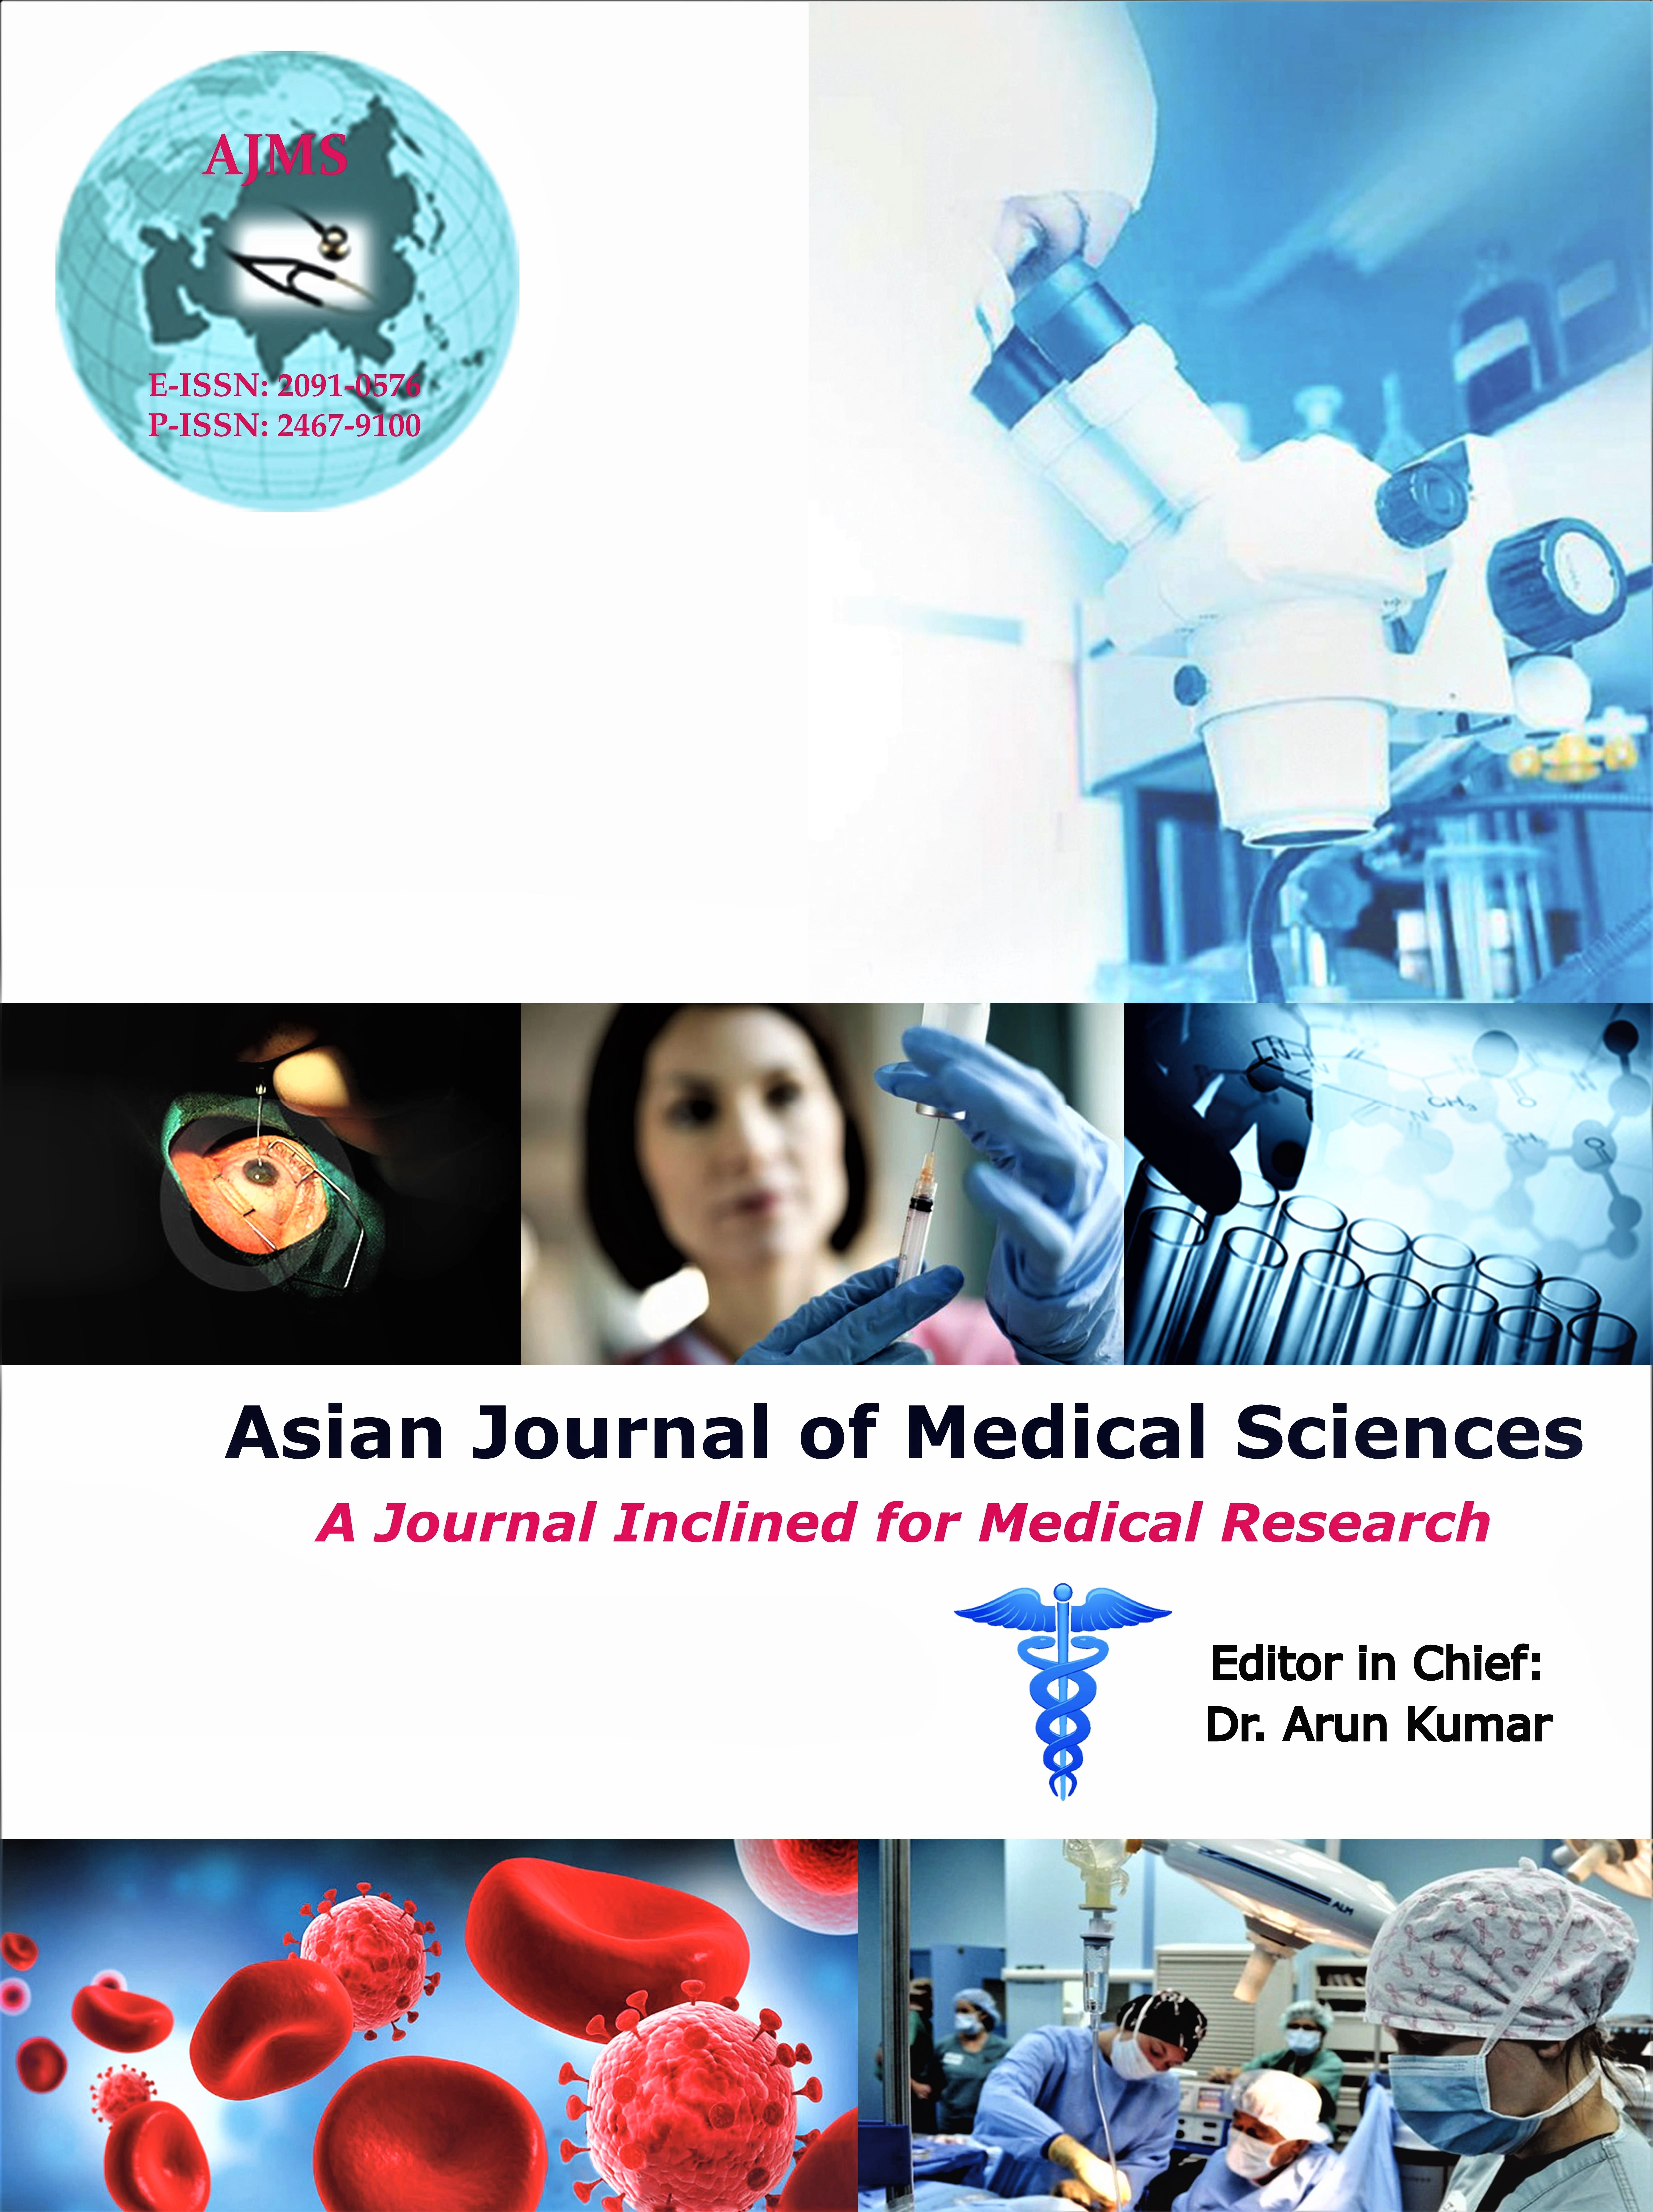 Asian Journal of Medical Sciences Coverpage